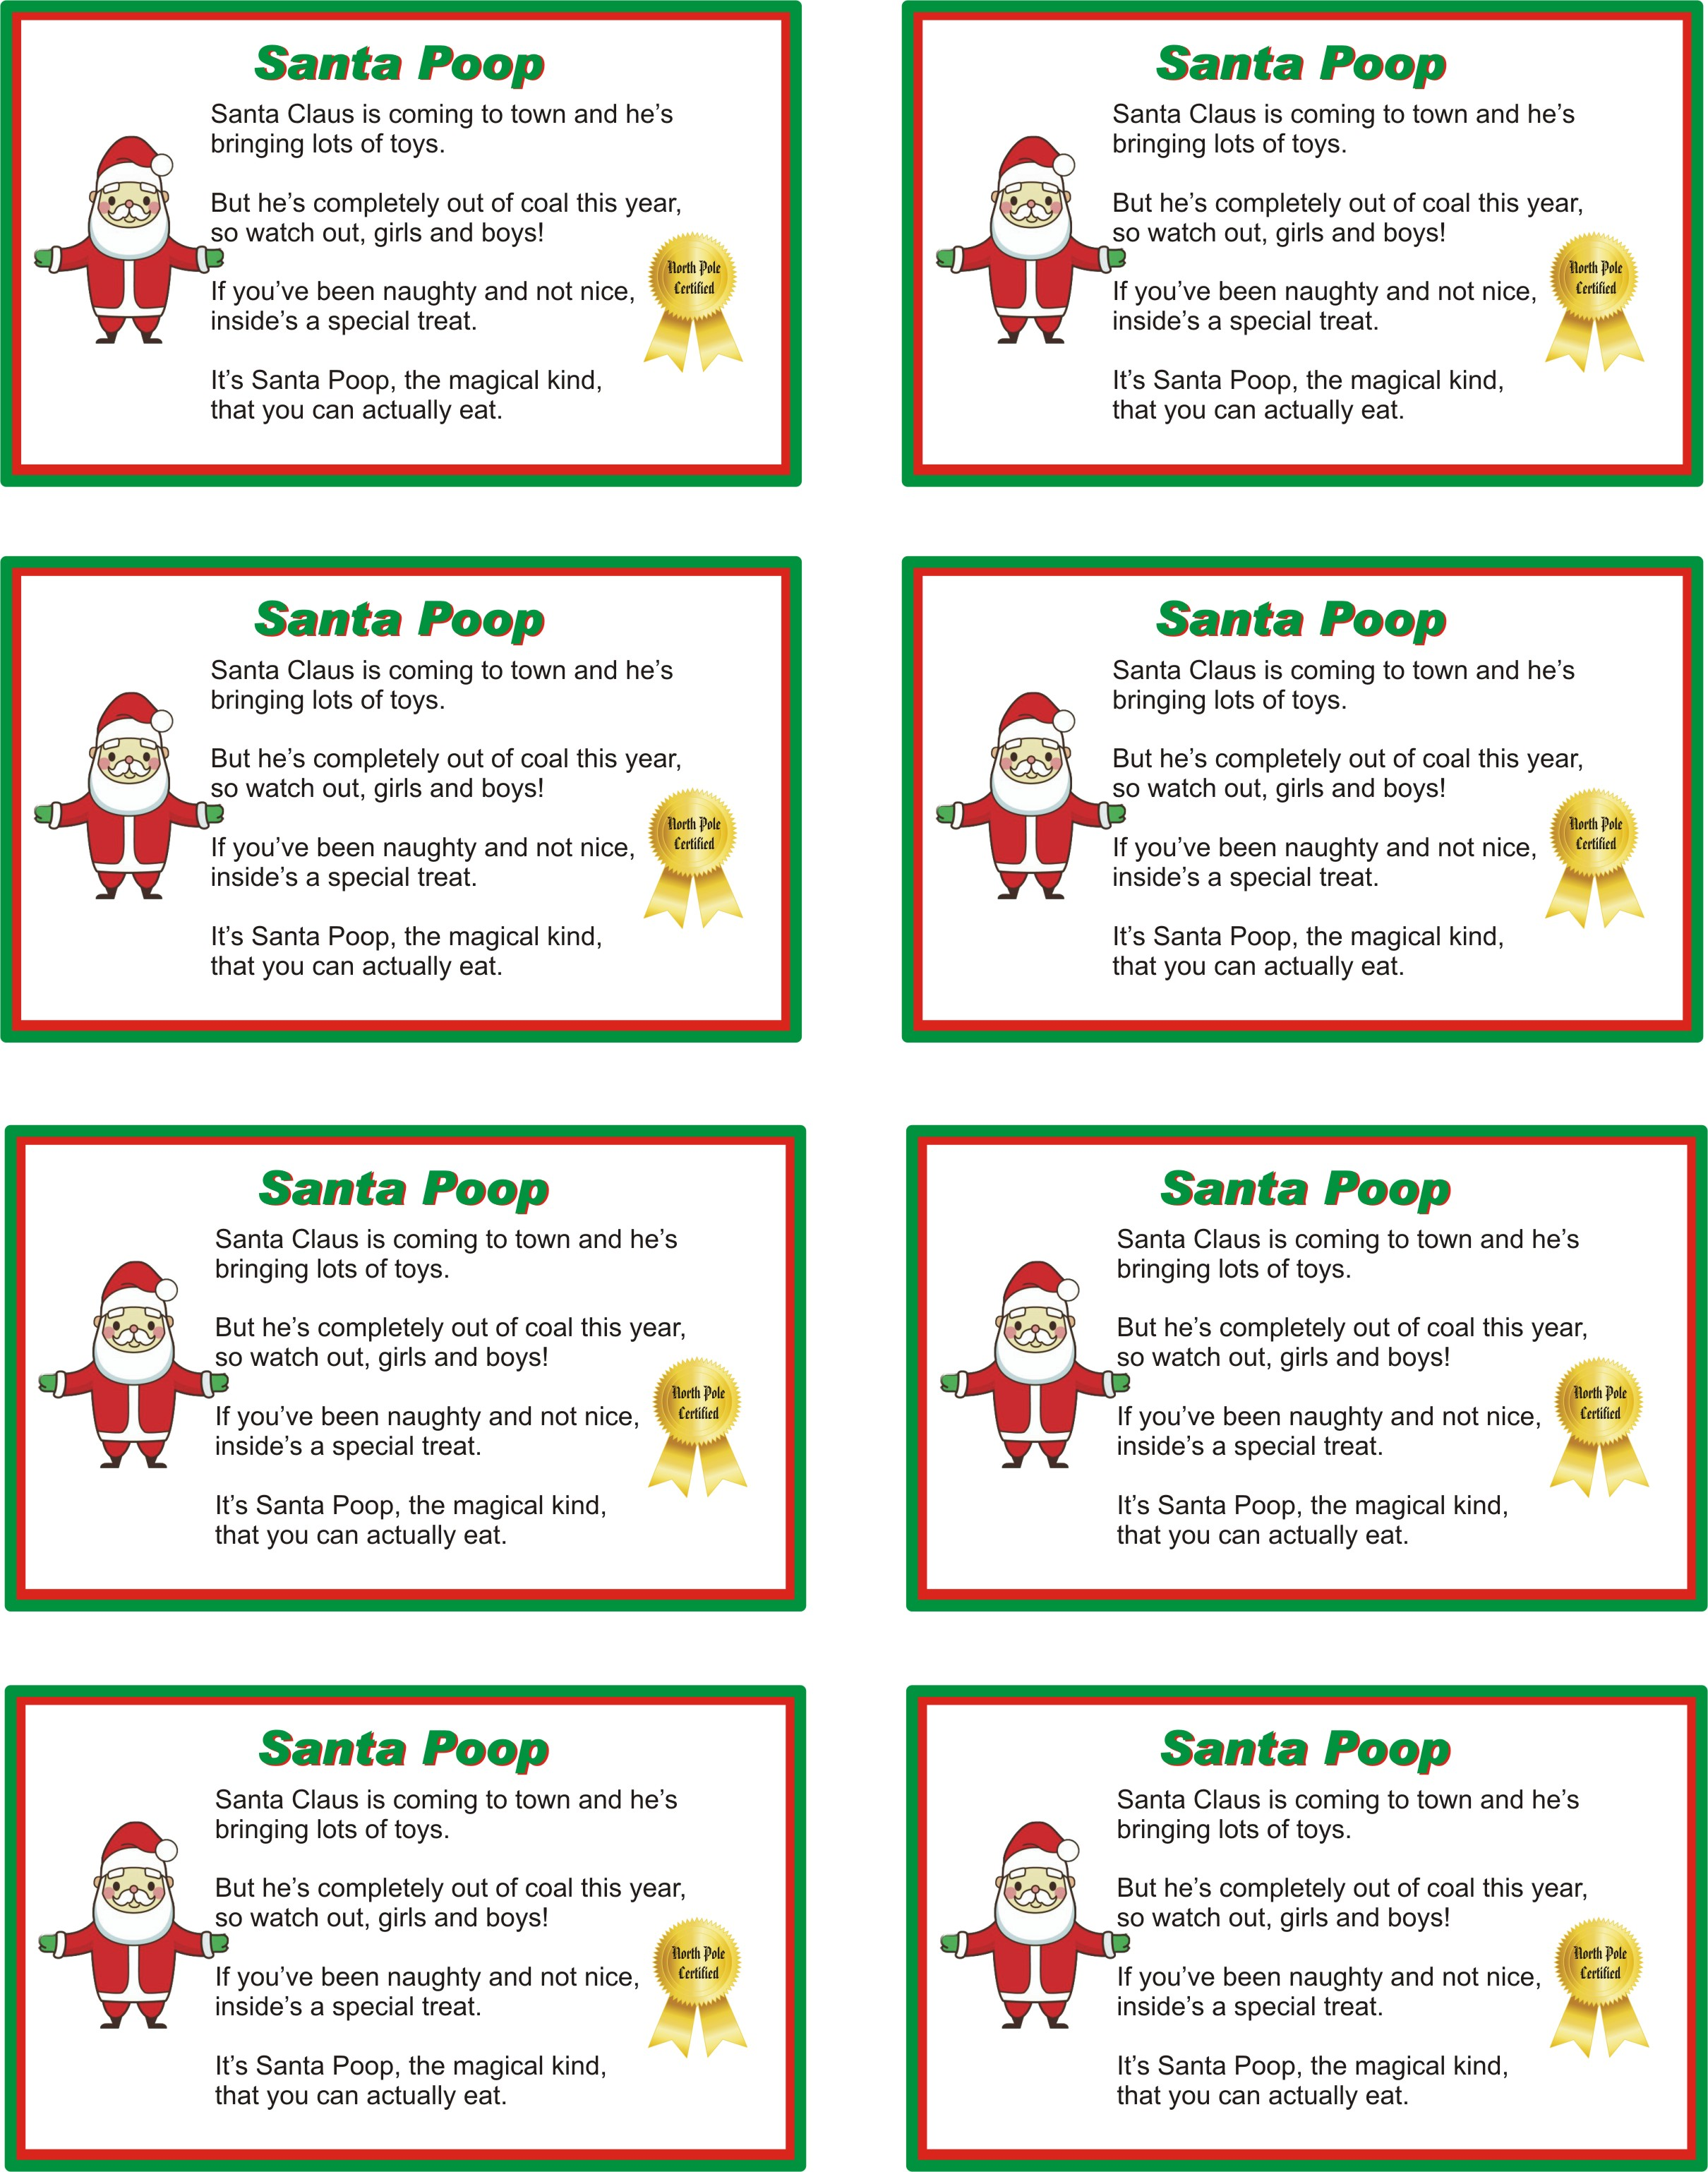 Santa Poop Poem And Recipe Letters To Kids From Santa.com - 2420x3077 ...